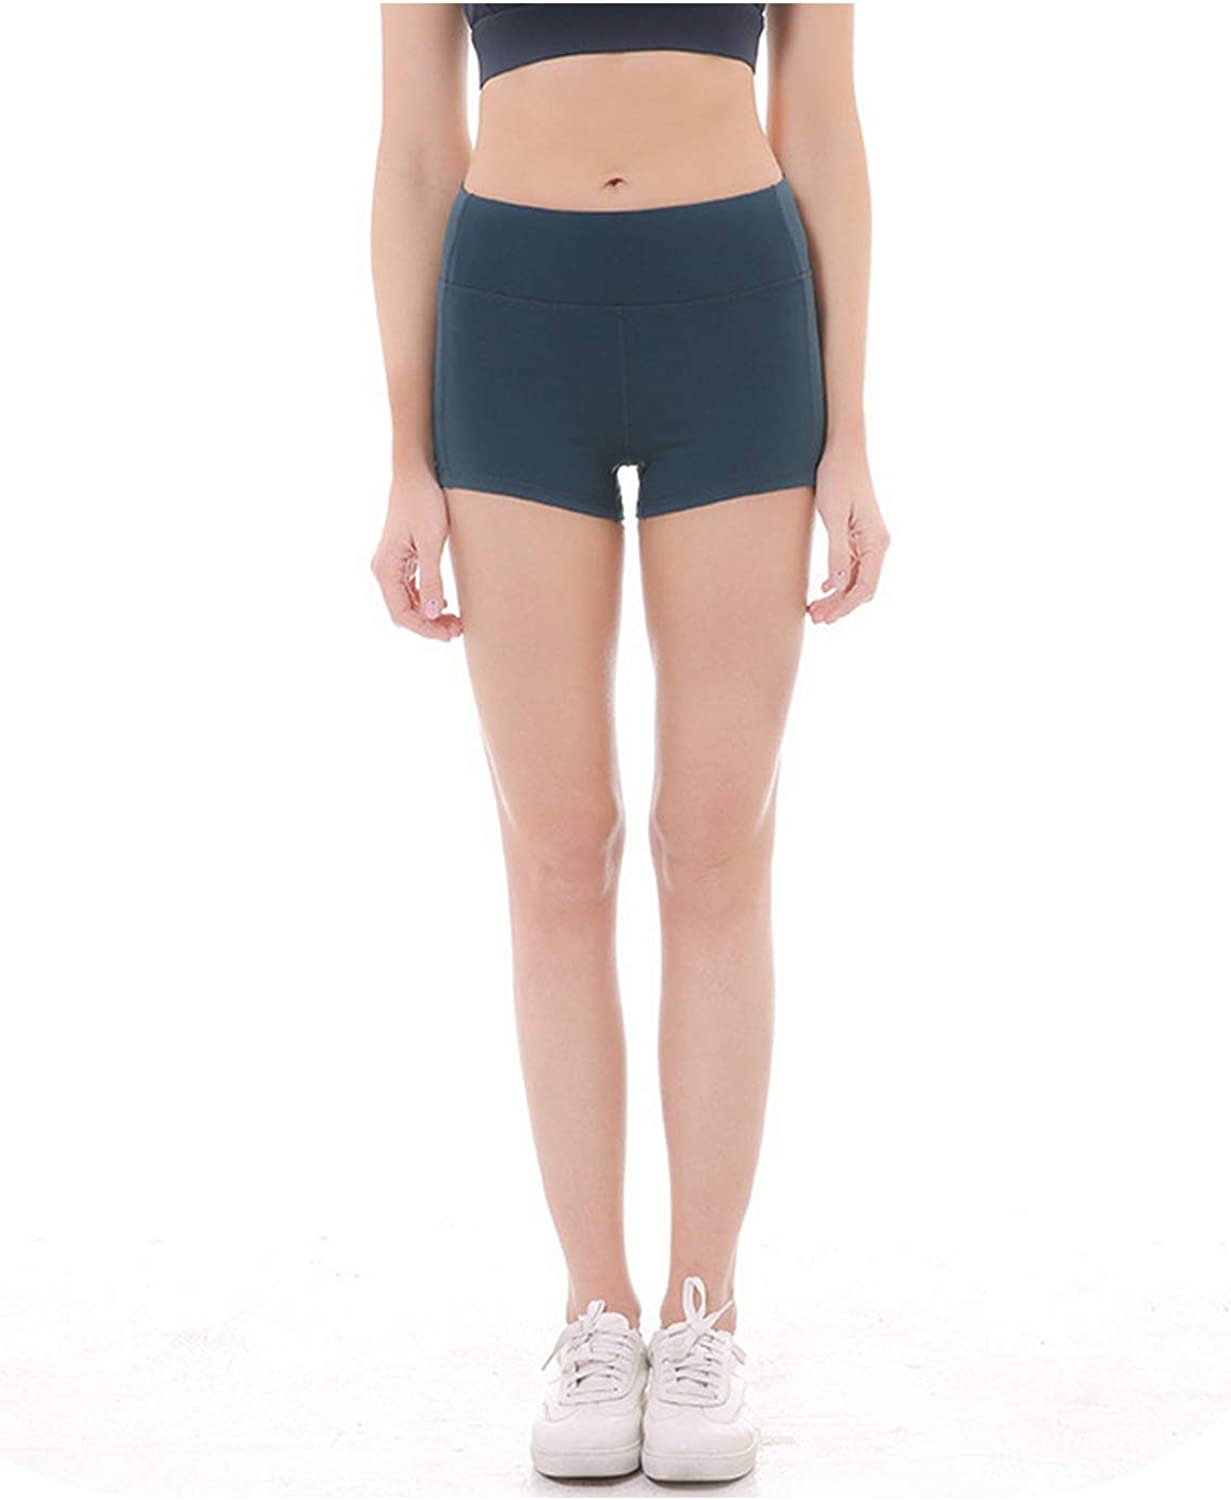 V-A-O-L Yoga Shorts Women High Waist Tight Athletic Quick Dry Solid